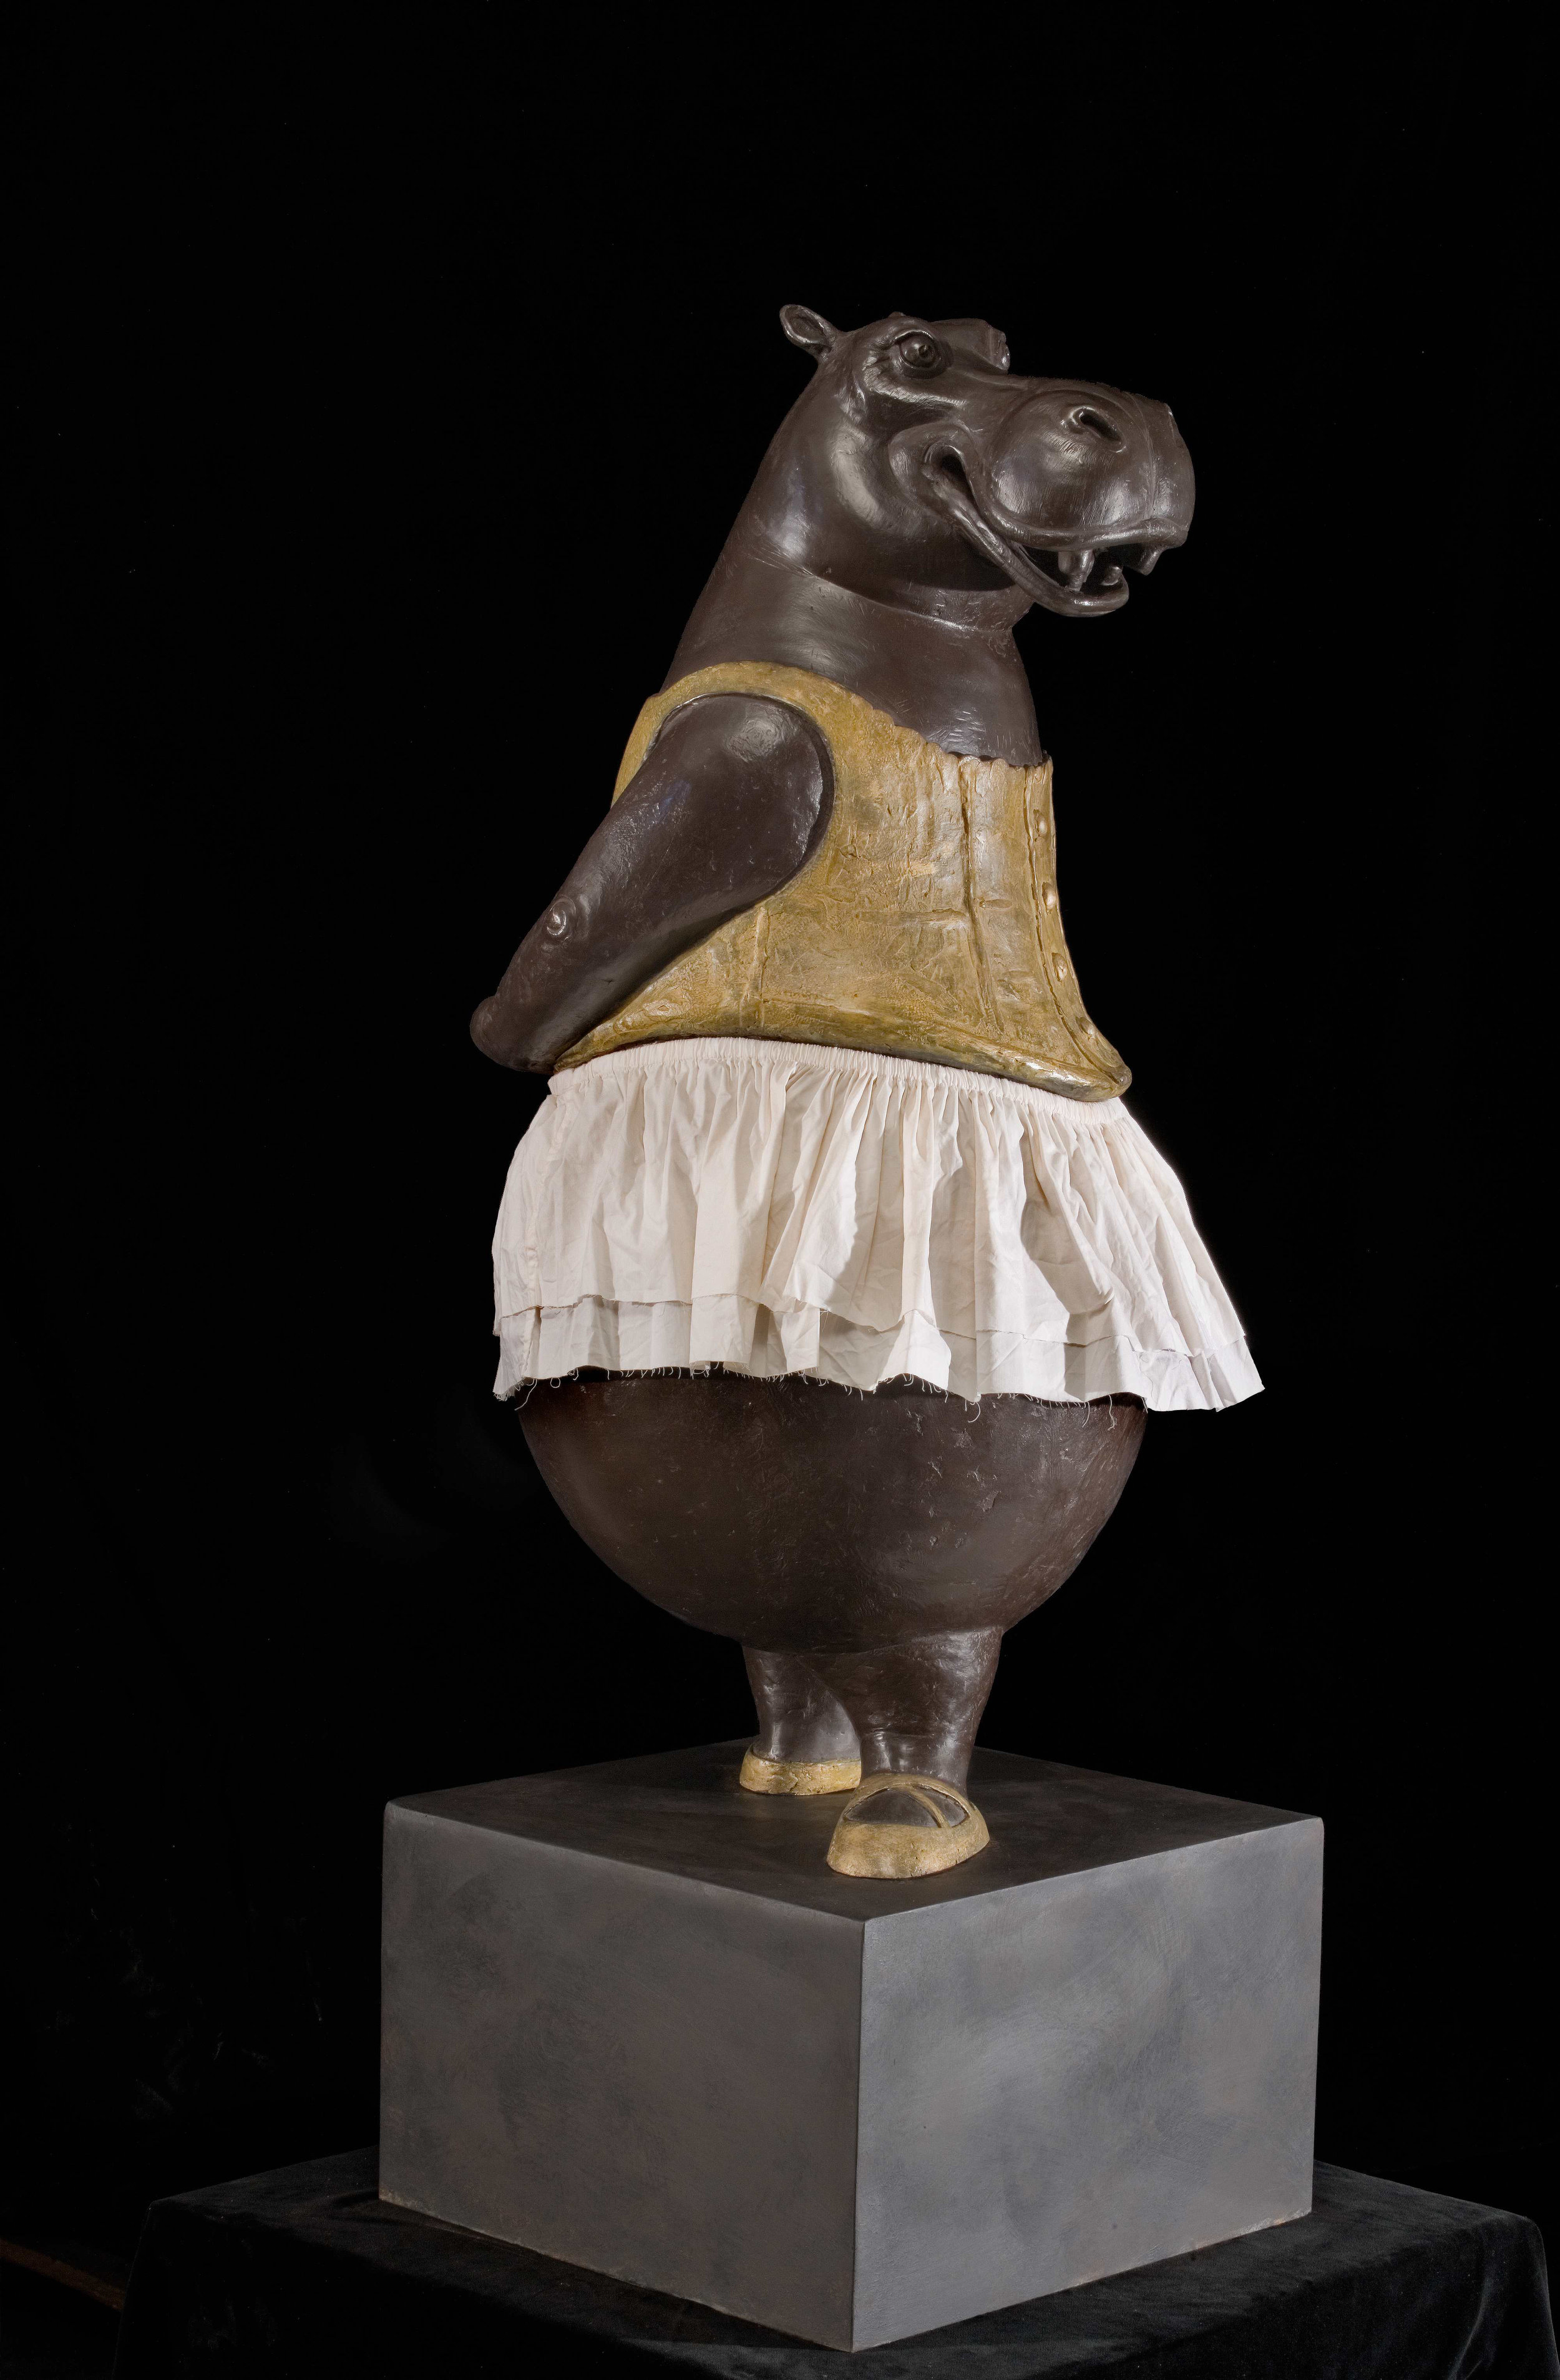 Hippo Ballerina, Fourth Position, AP 1/3,  2015 Bronze with fabric skirt 46 x 20 x 20 inches